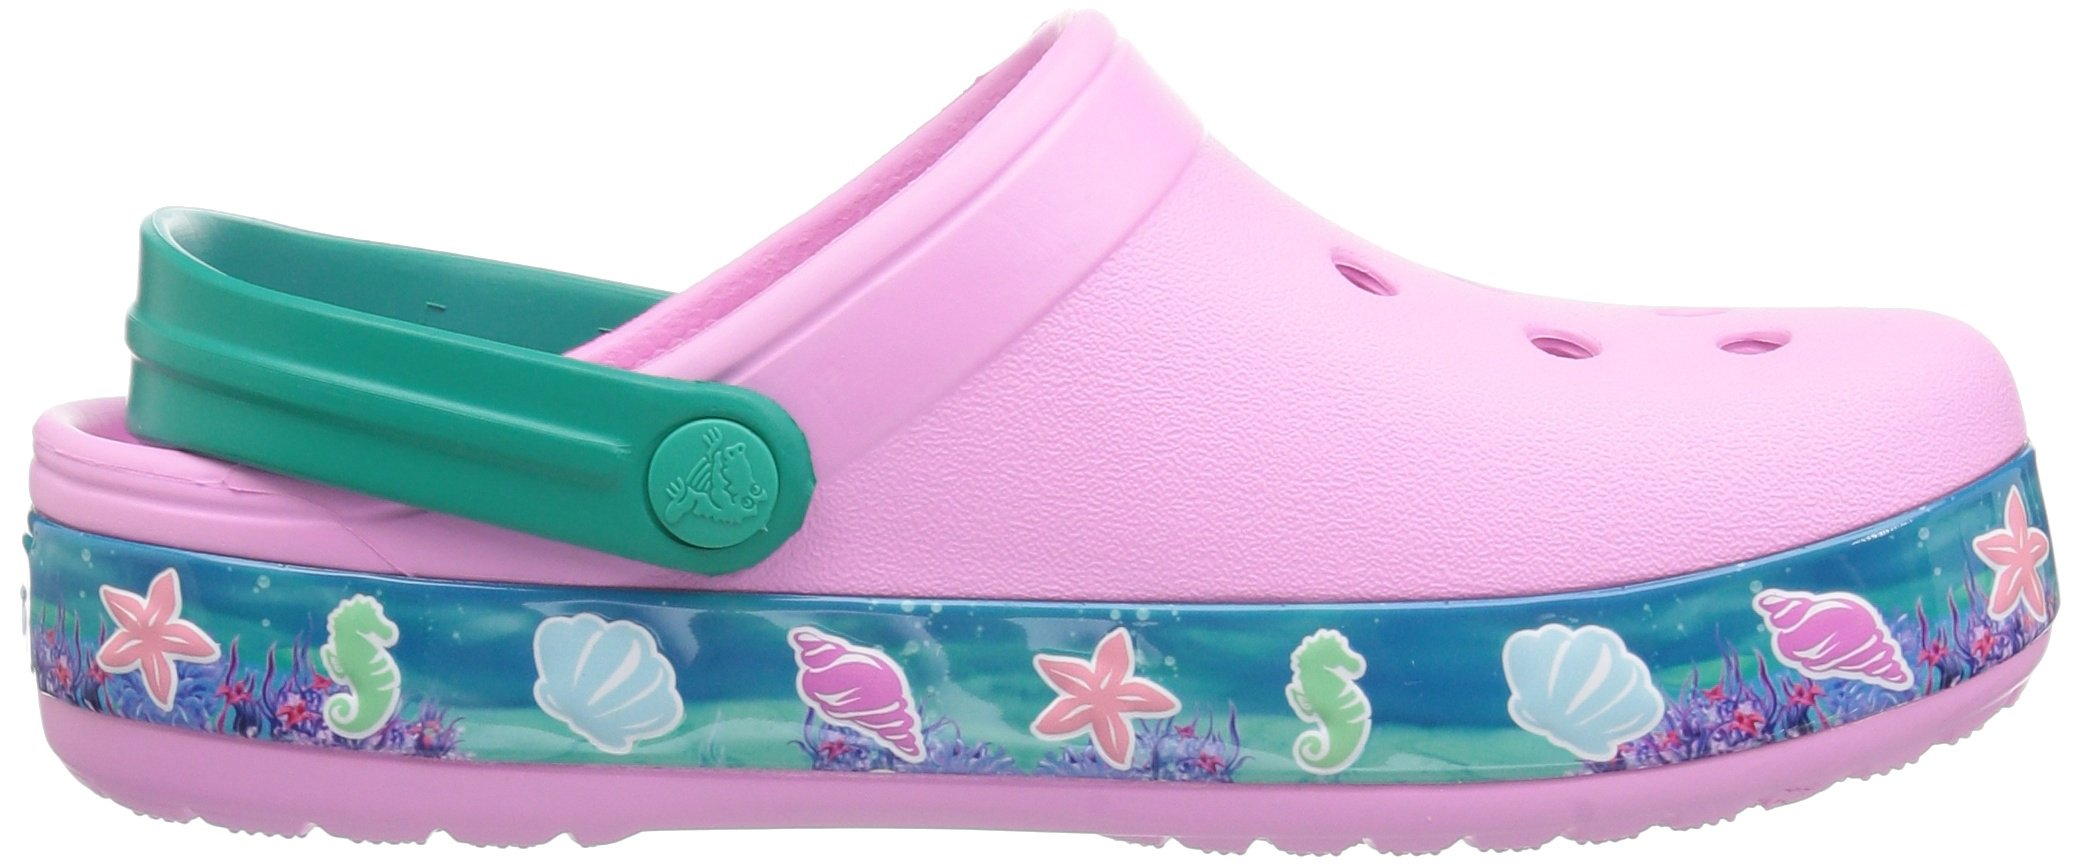 Crocs Unisex-Kids  CB Princess Ariel Clog K , carnation , C10 M US Toddler by Crocs (Image #7)